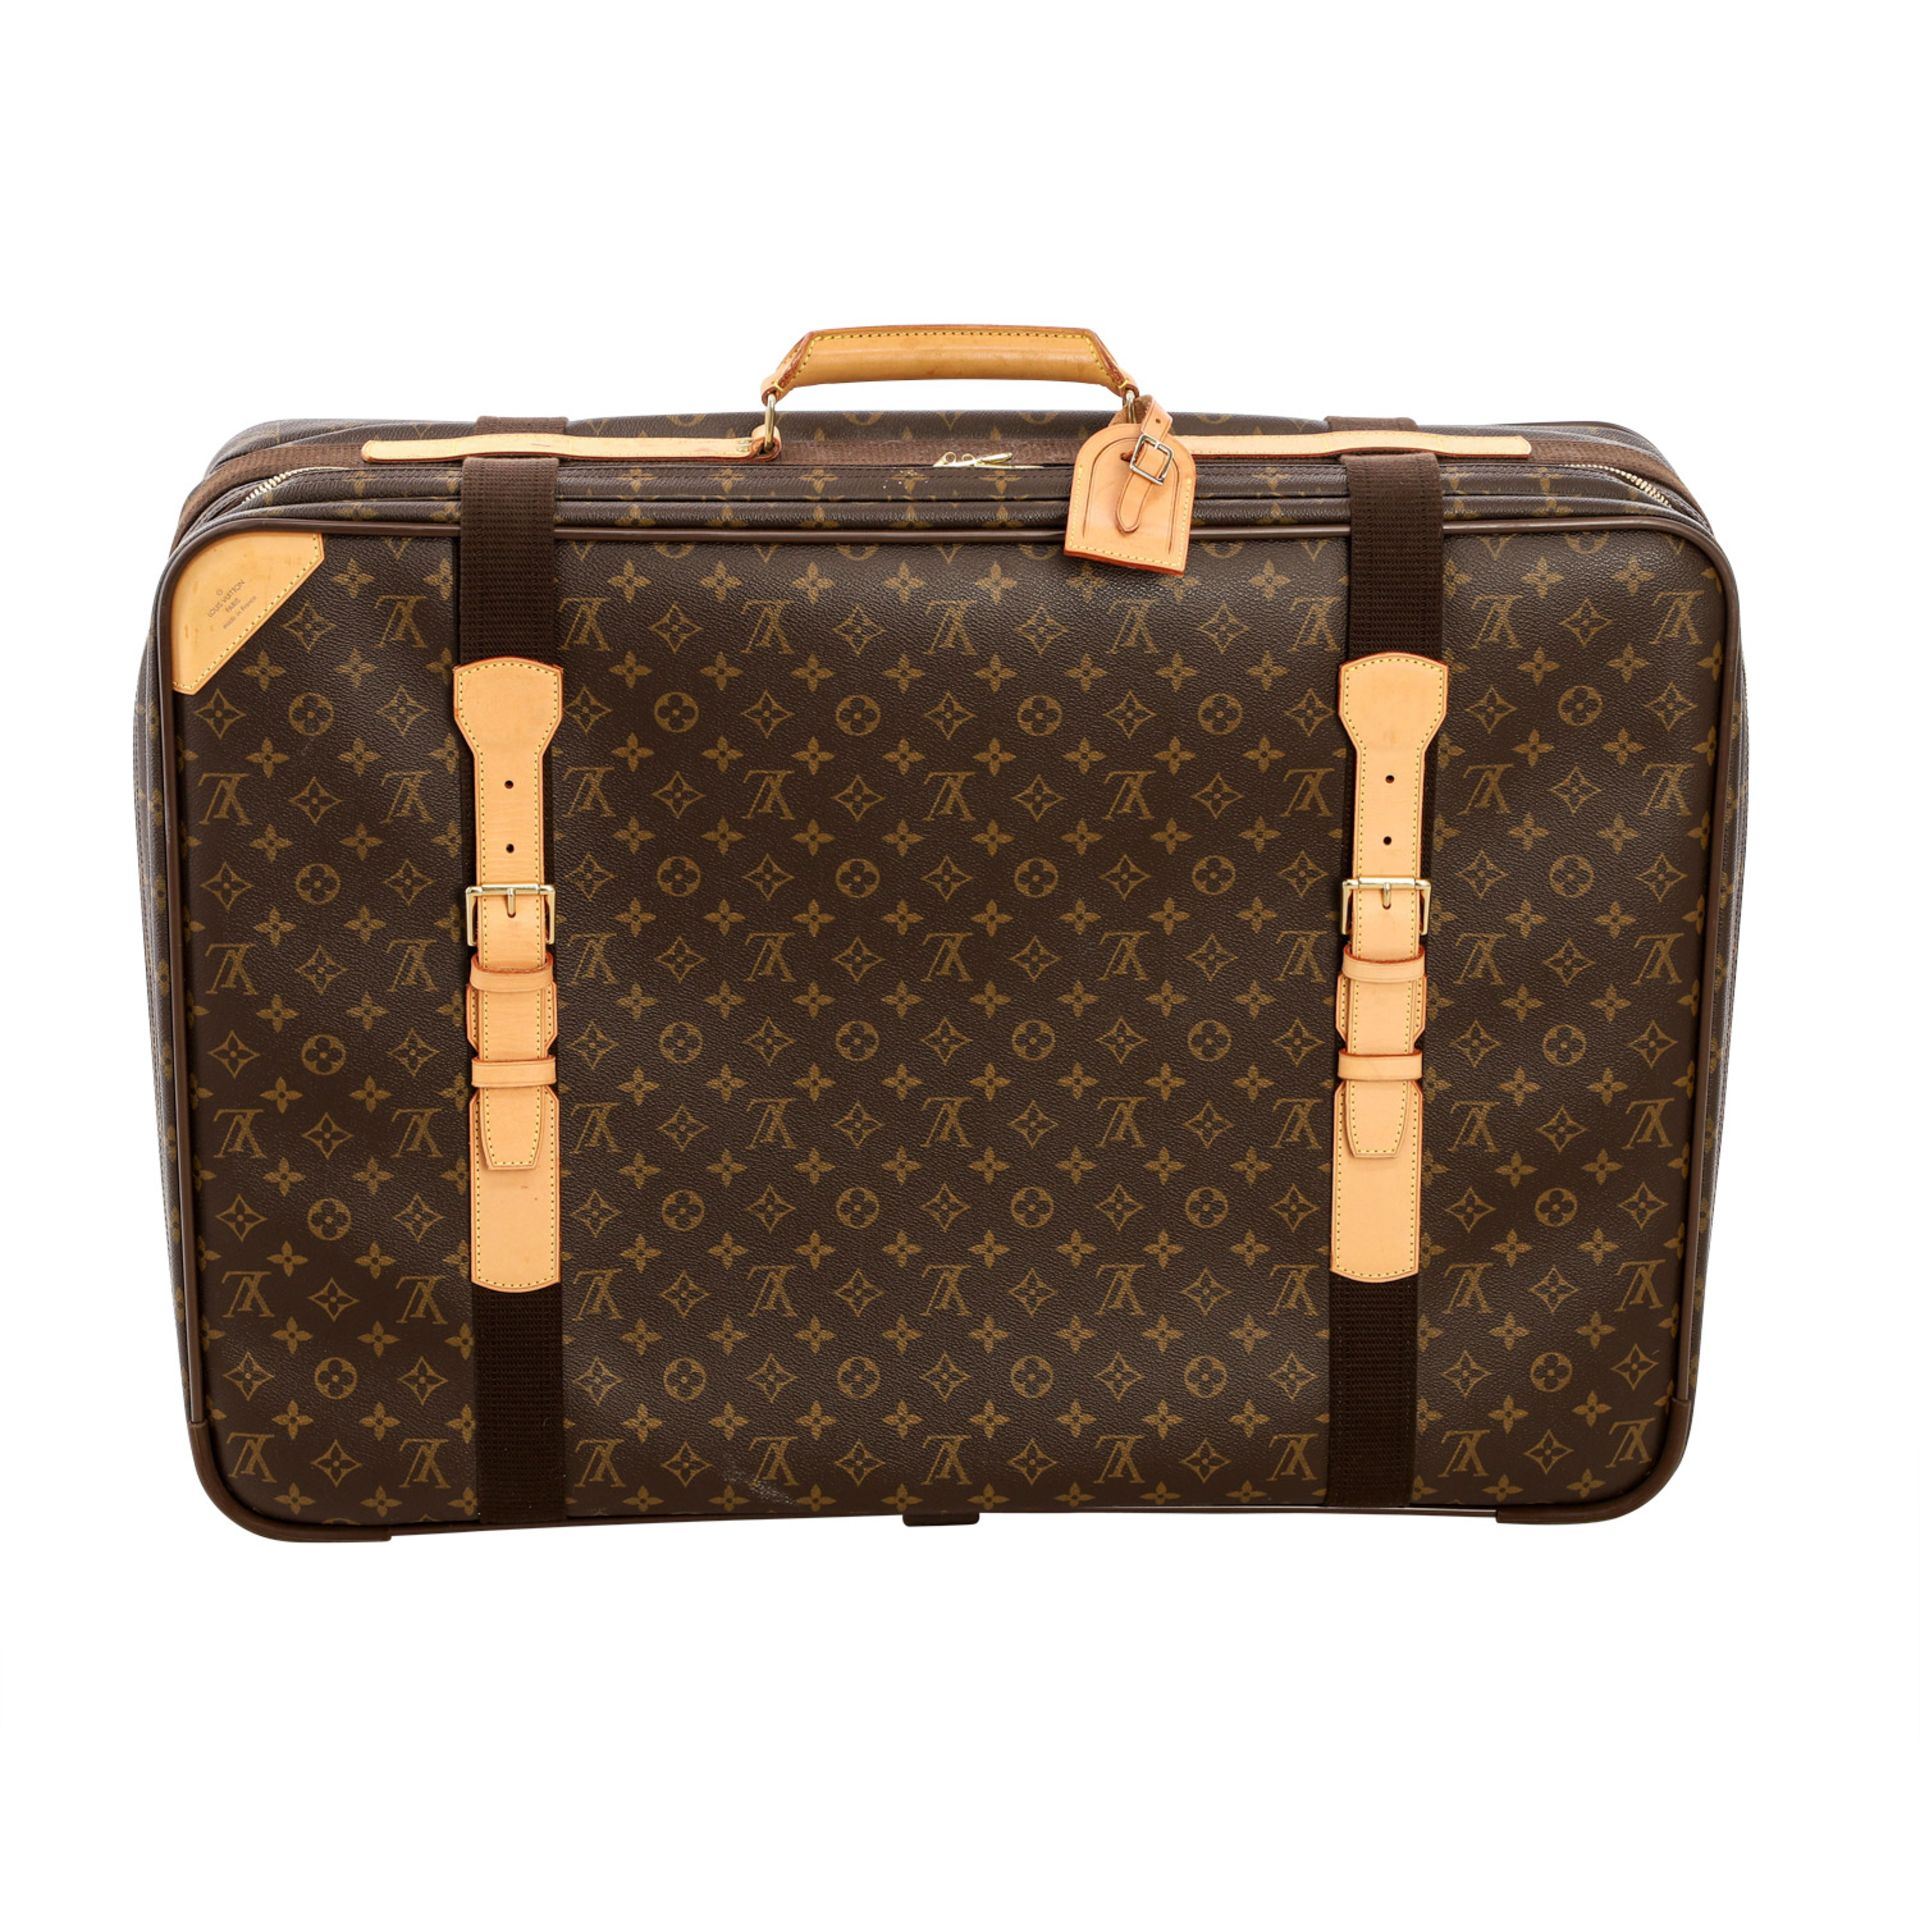 "LOUIS VUITTON Reisetasche ""SIRIUS 70"", Koll. 2000.Akt. NP.: 1.790,-€. Monogram Canva - Image 4 of 6"